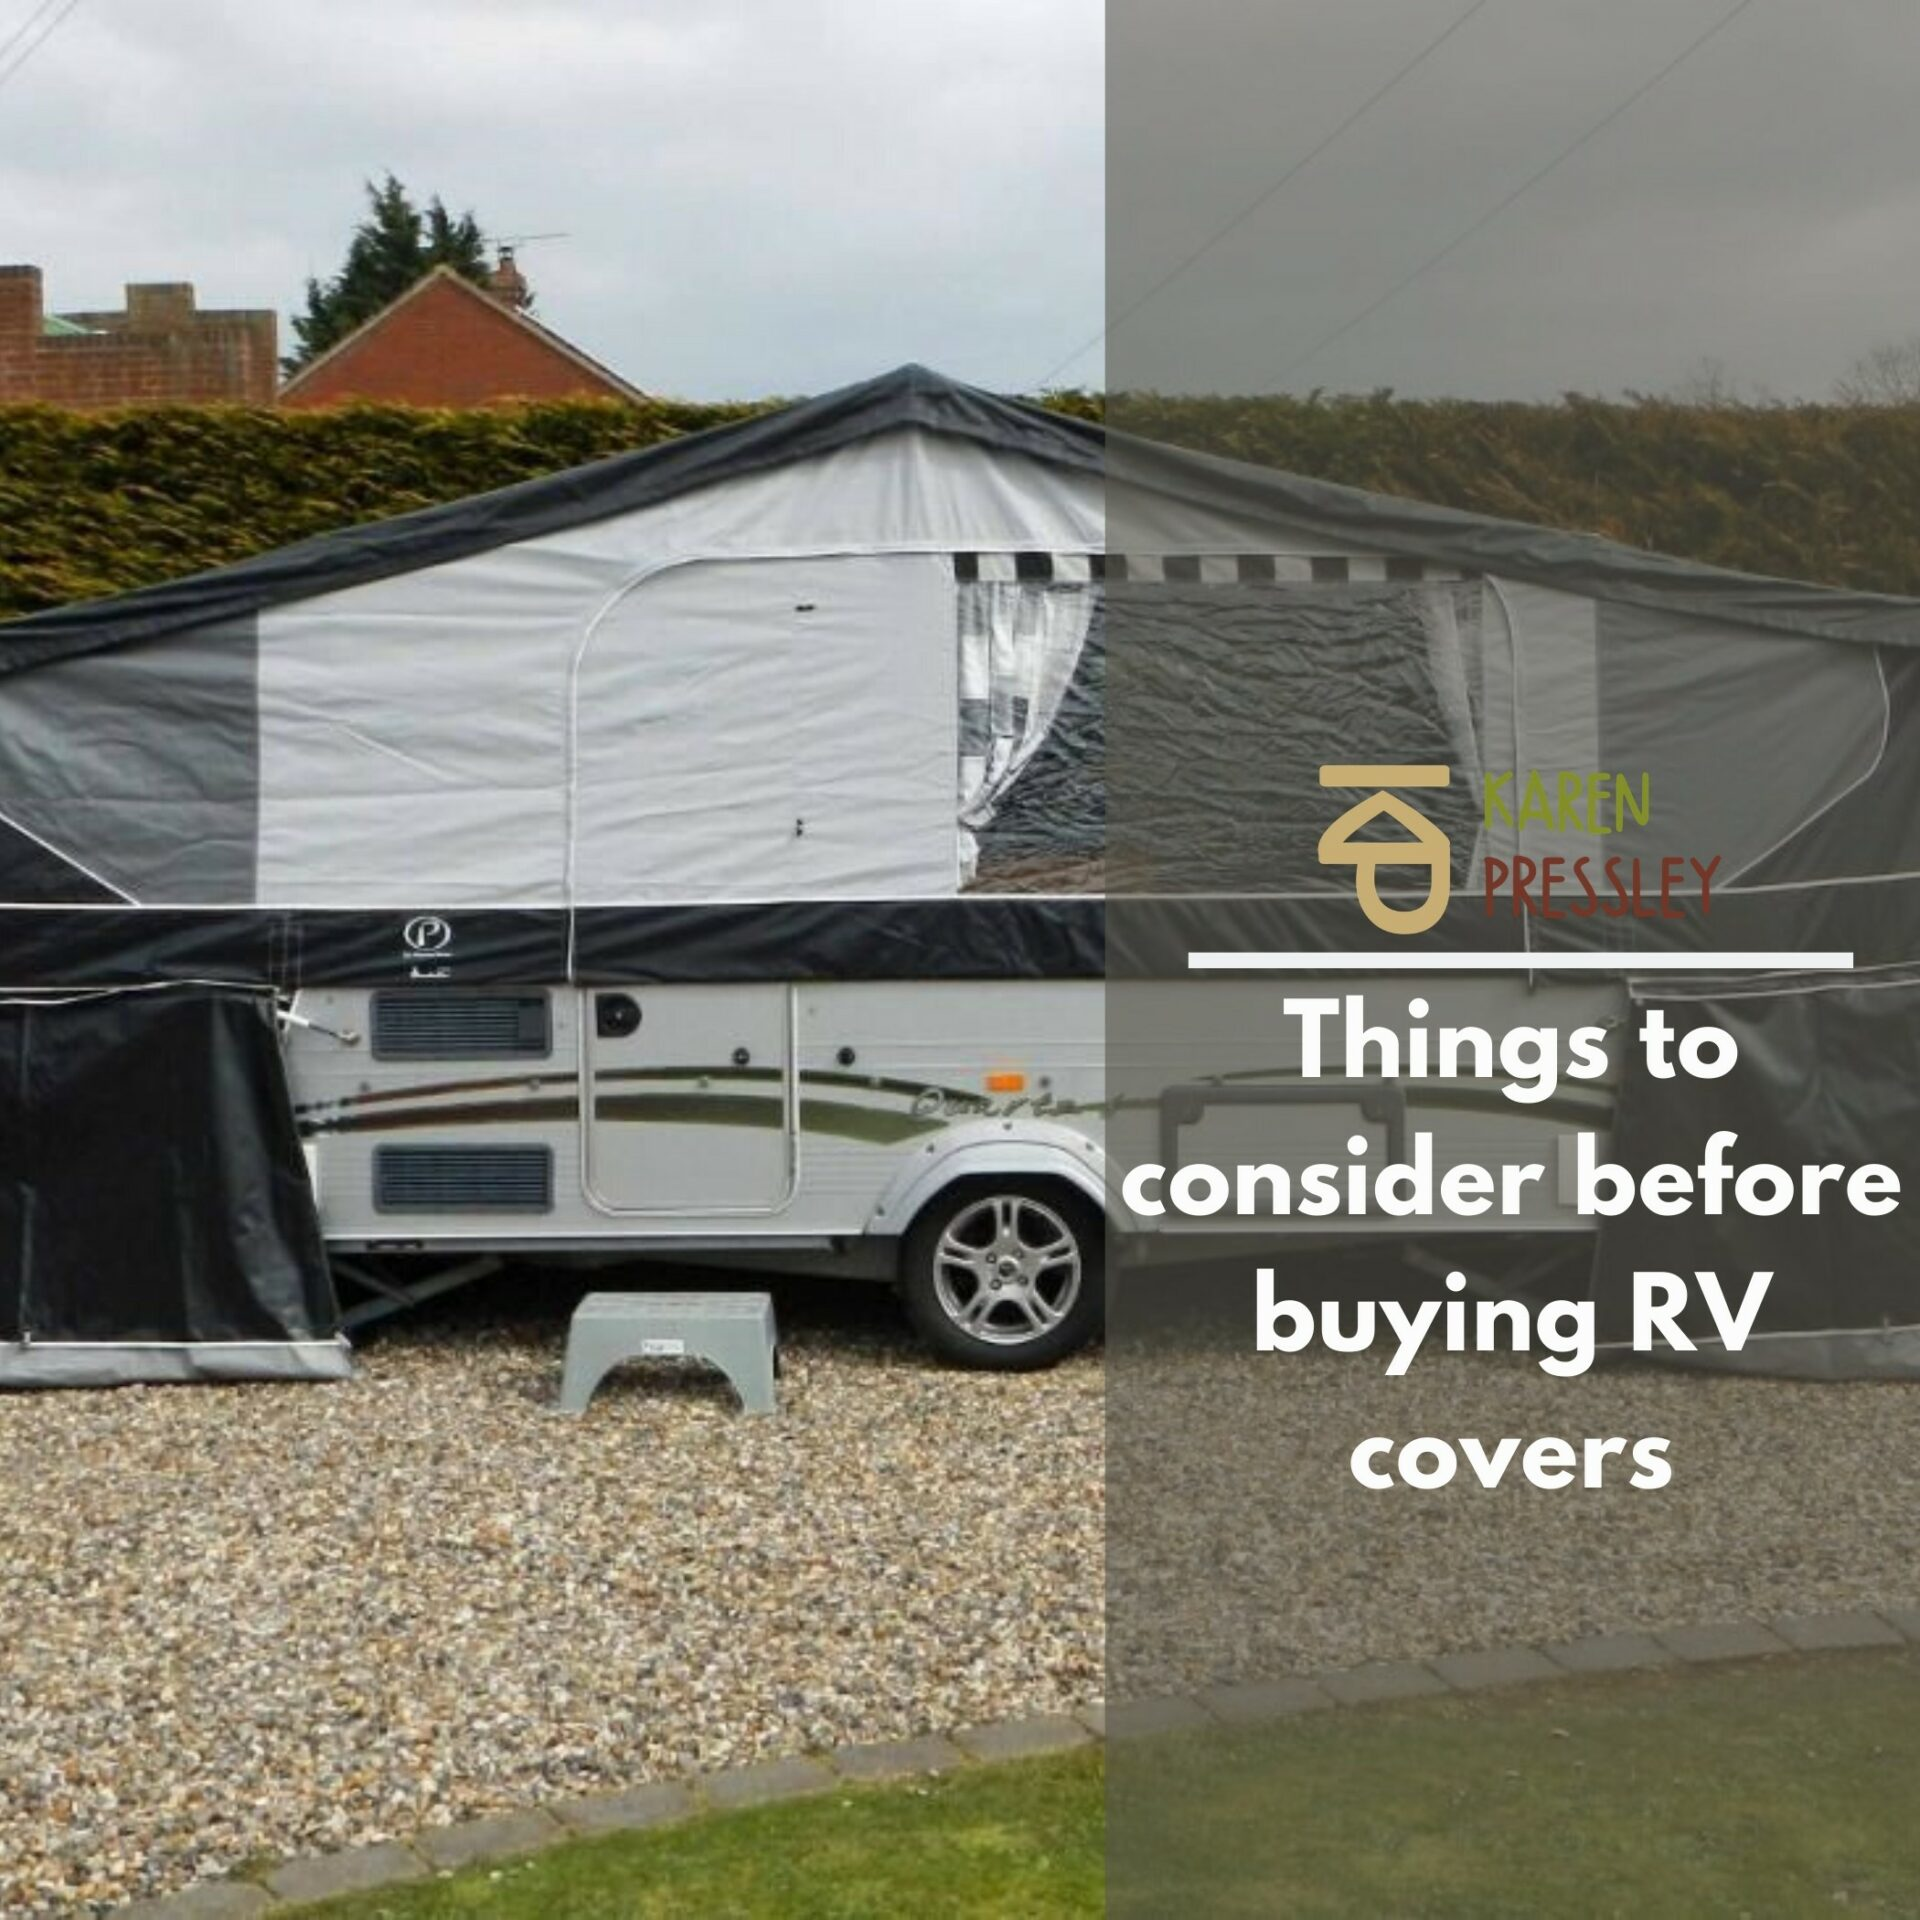 goldline rv covers best price